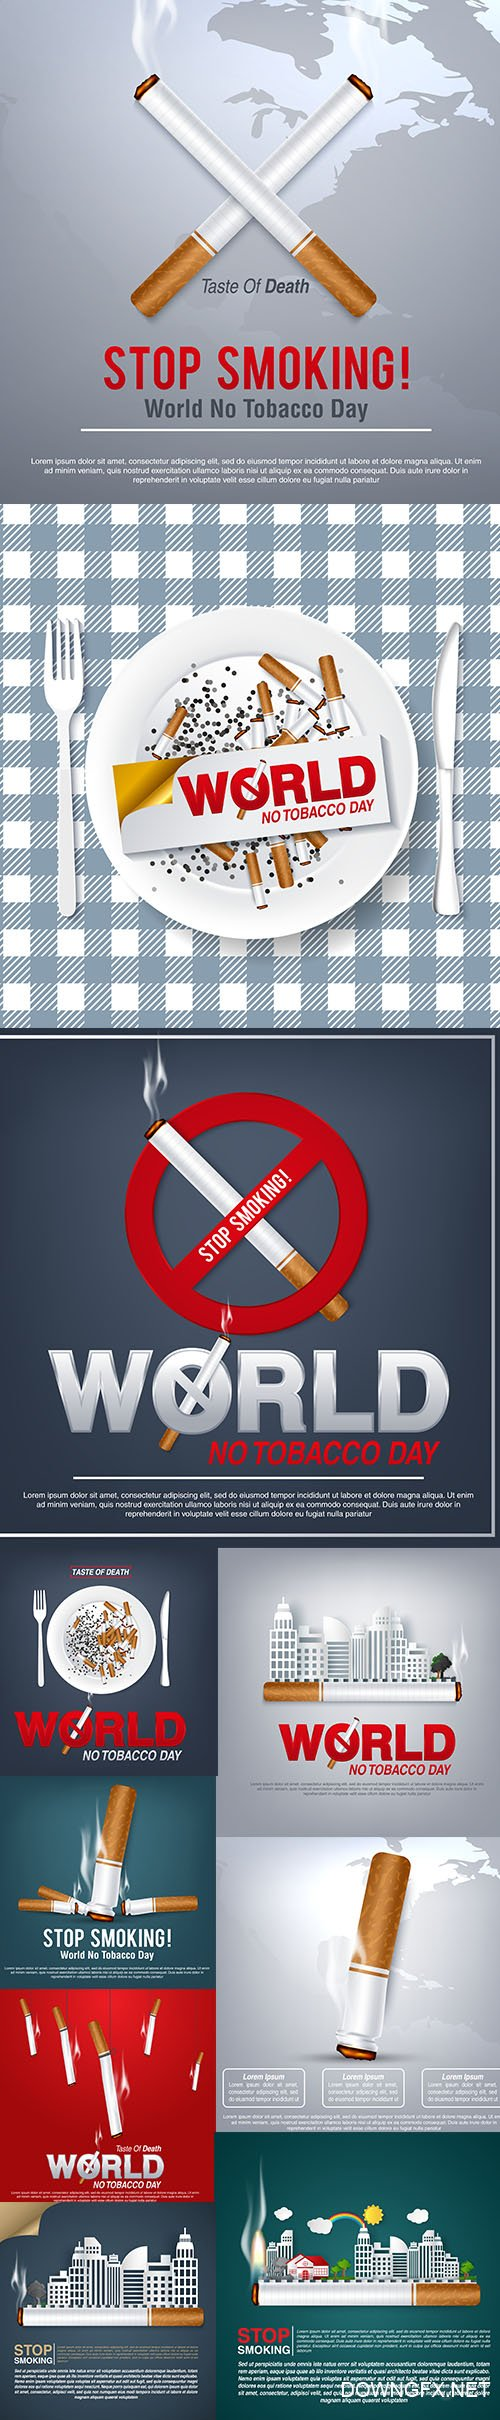 World NO Tobacco Day Stop Smoking